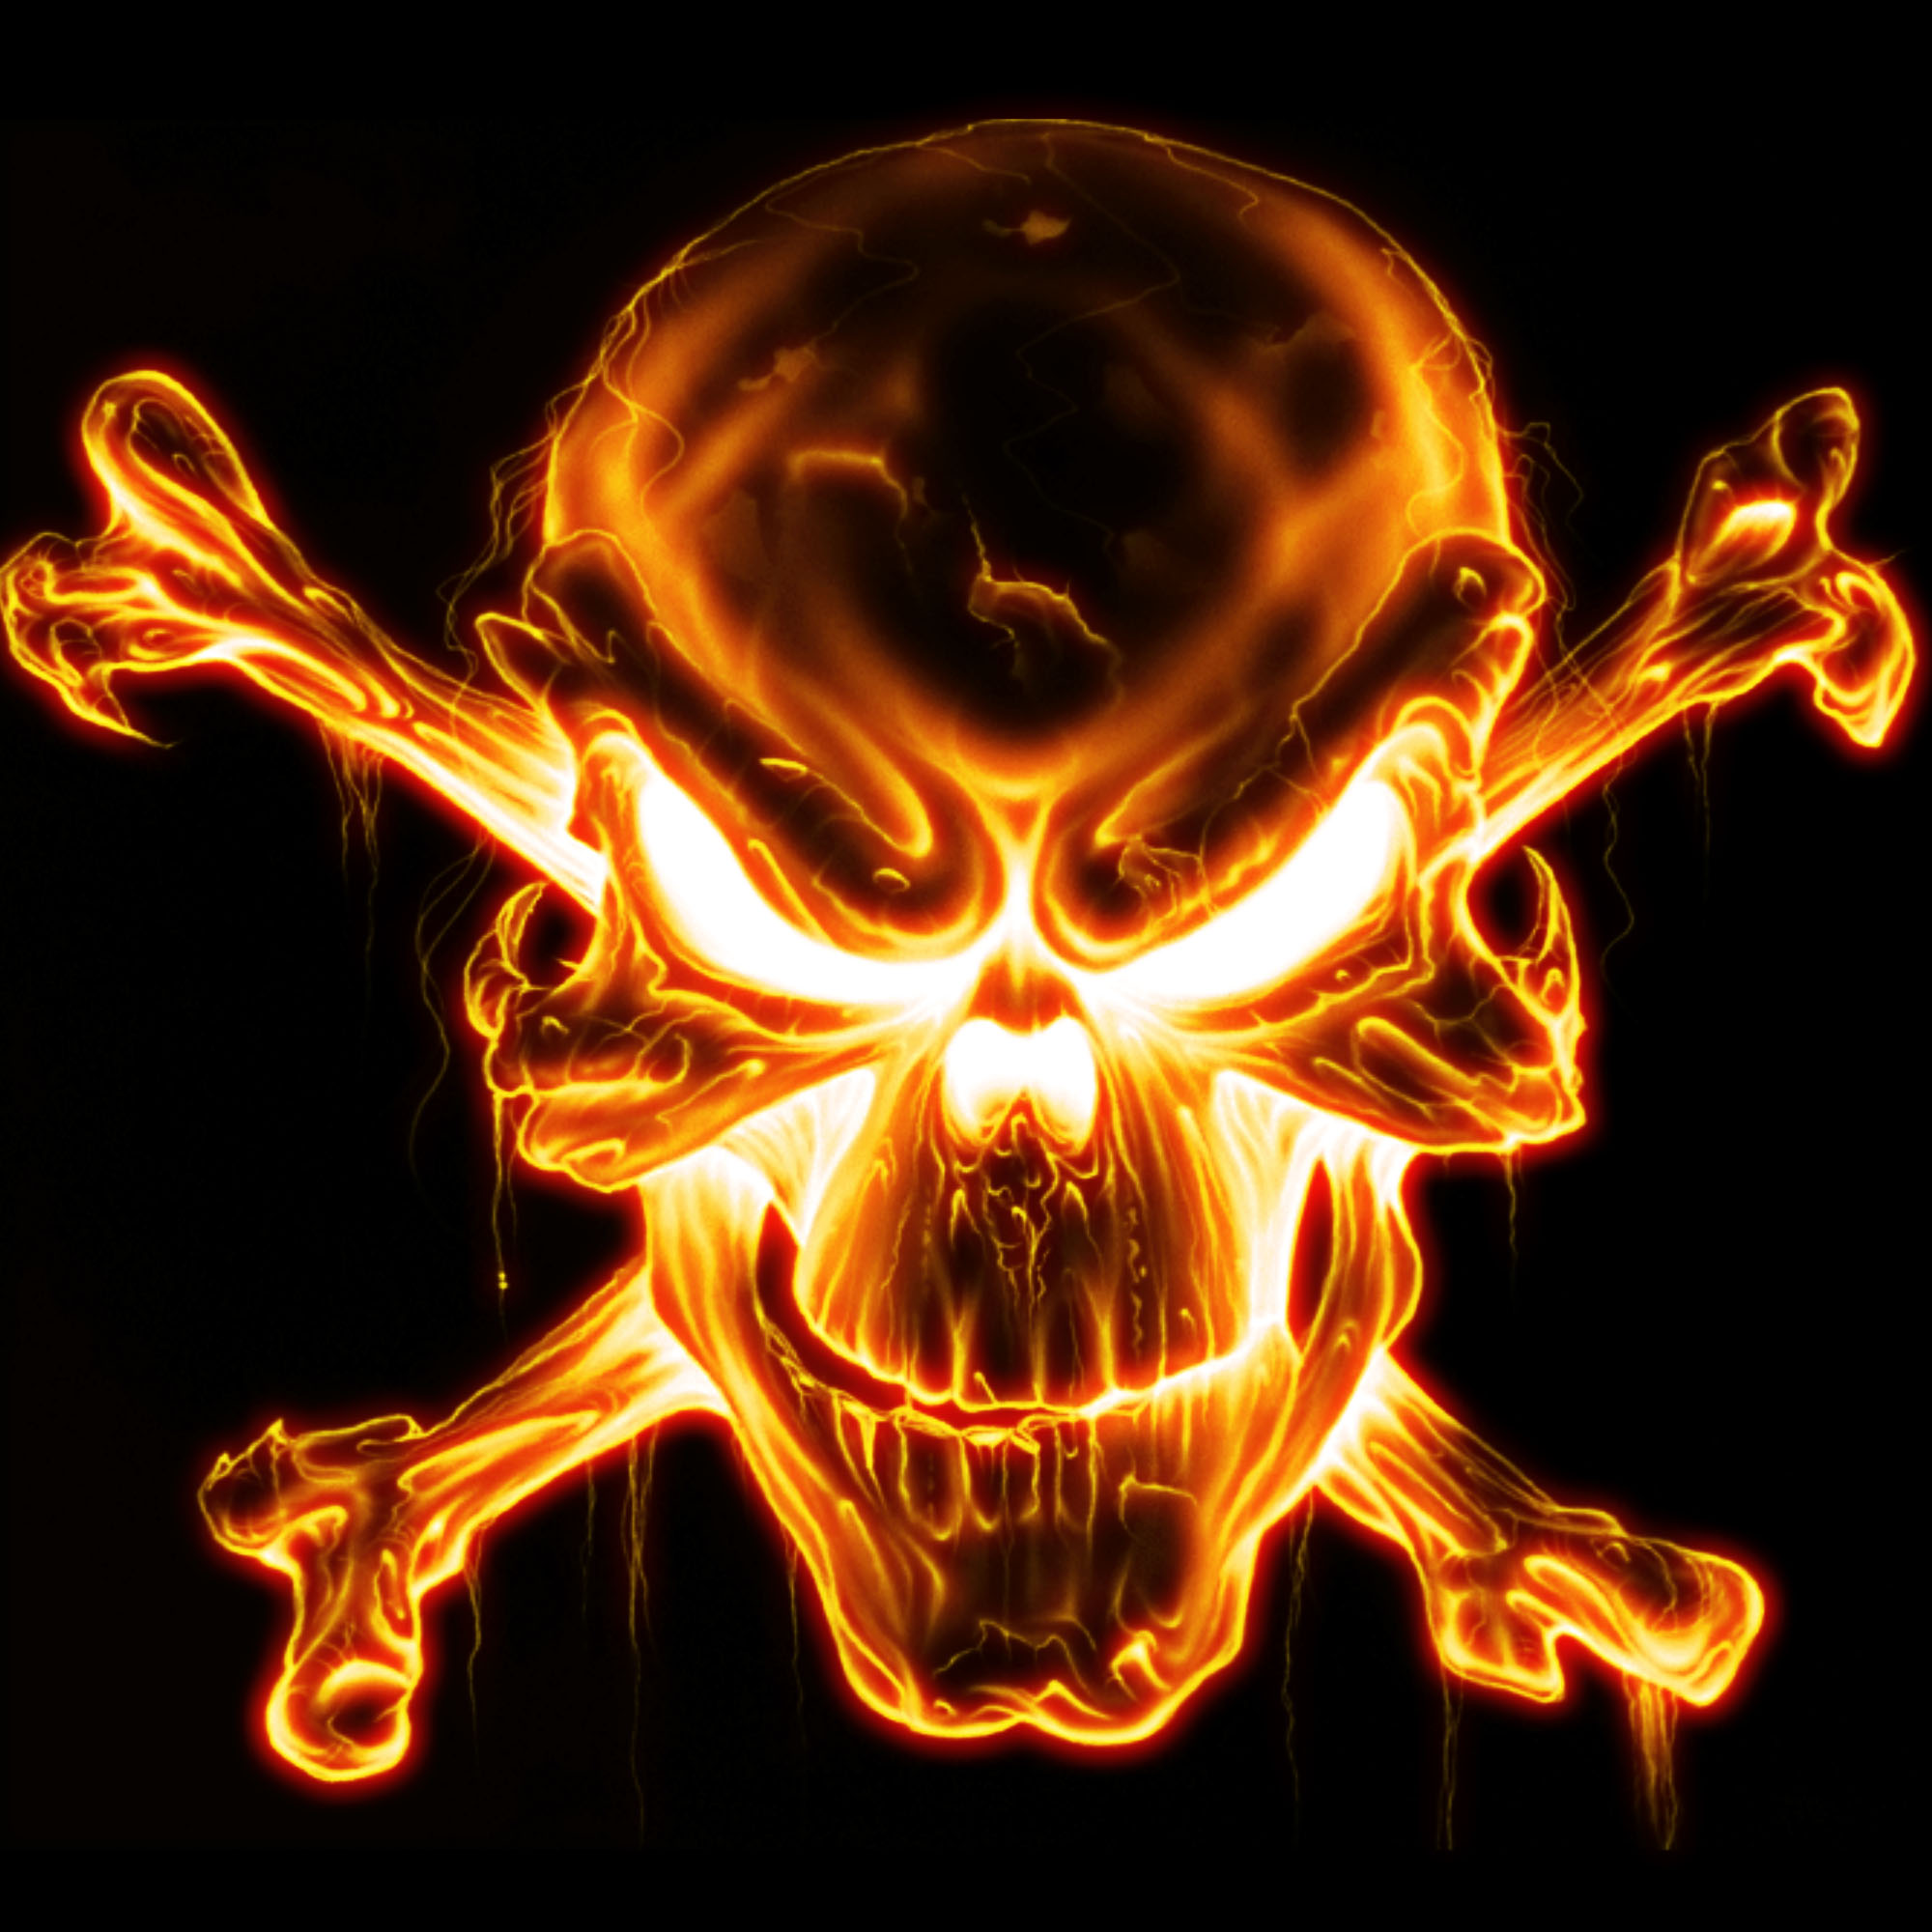 cool wallpaper fire skull - photo #3